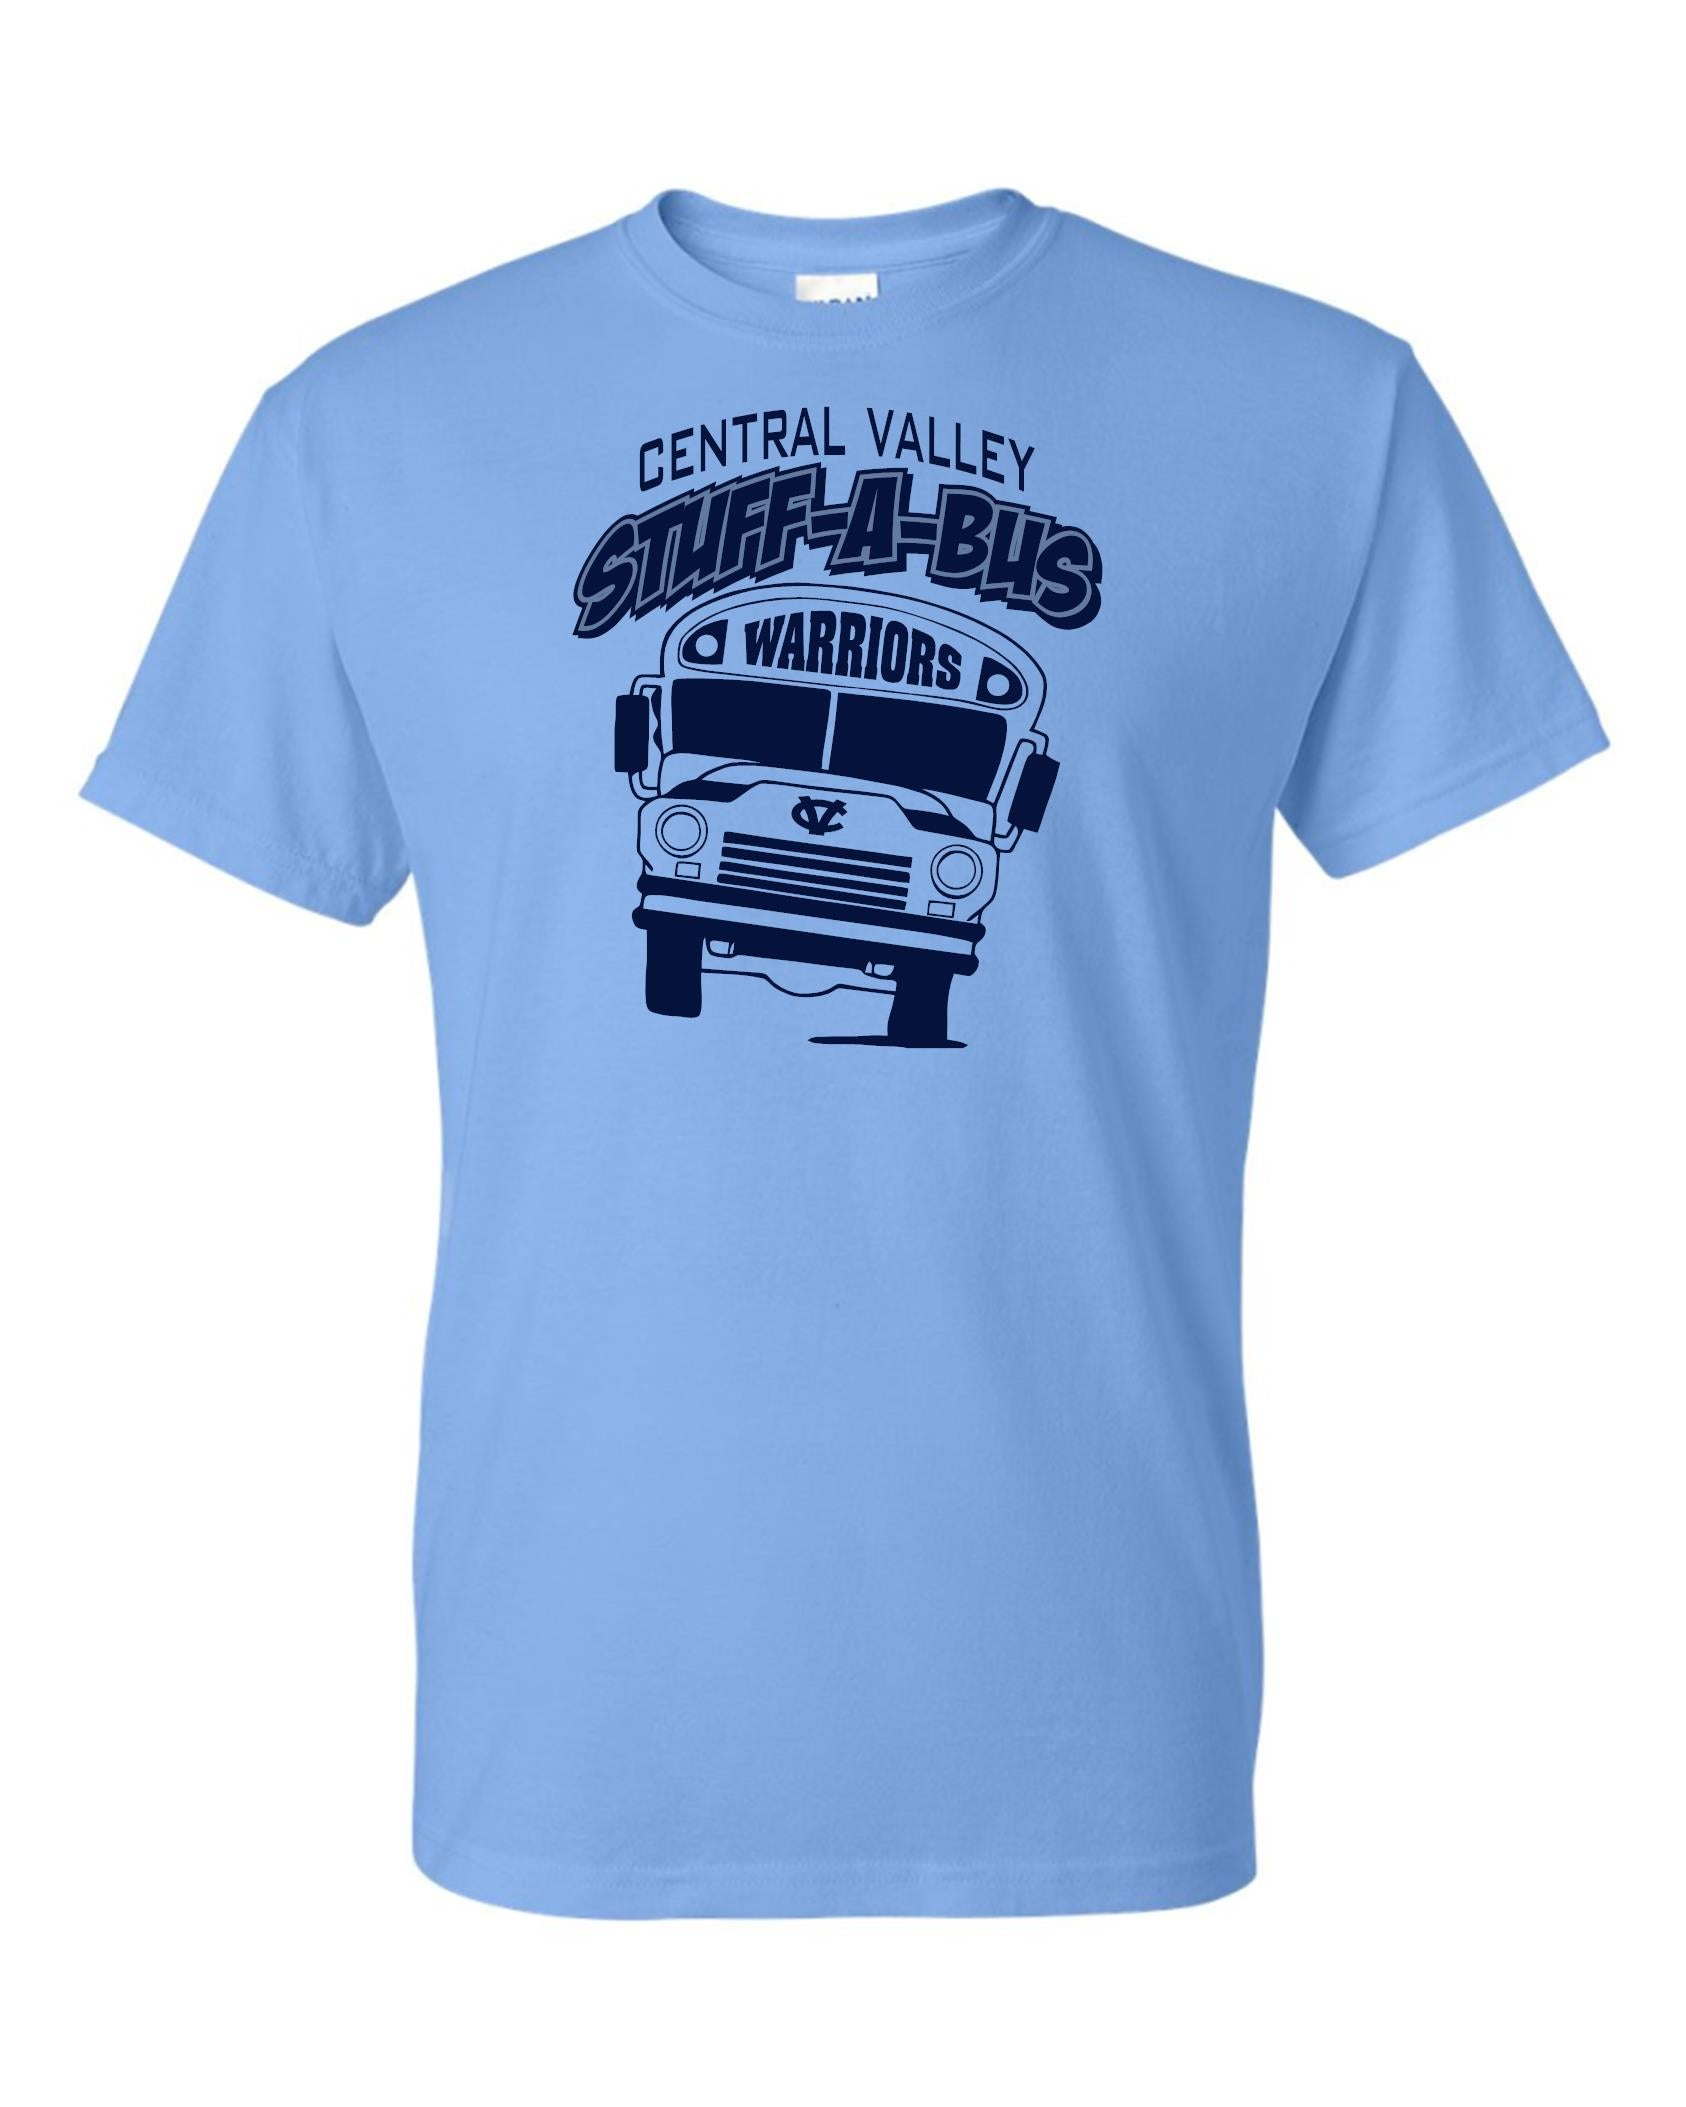 Stuff-A-Bus Tshirt